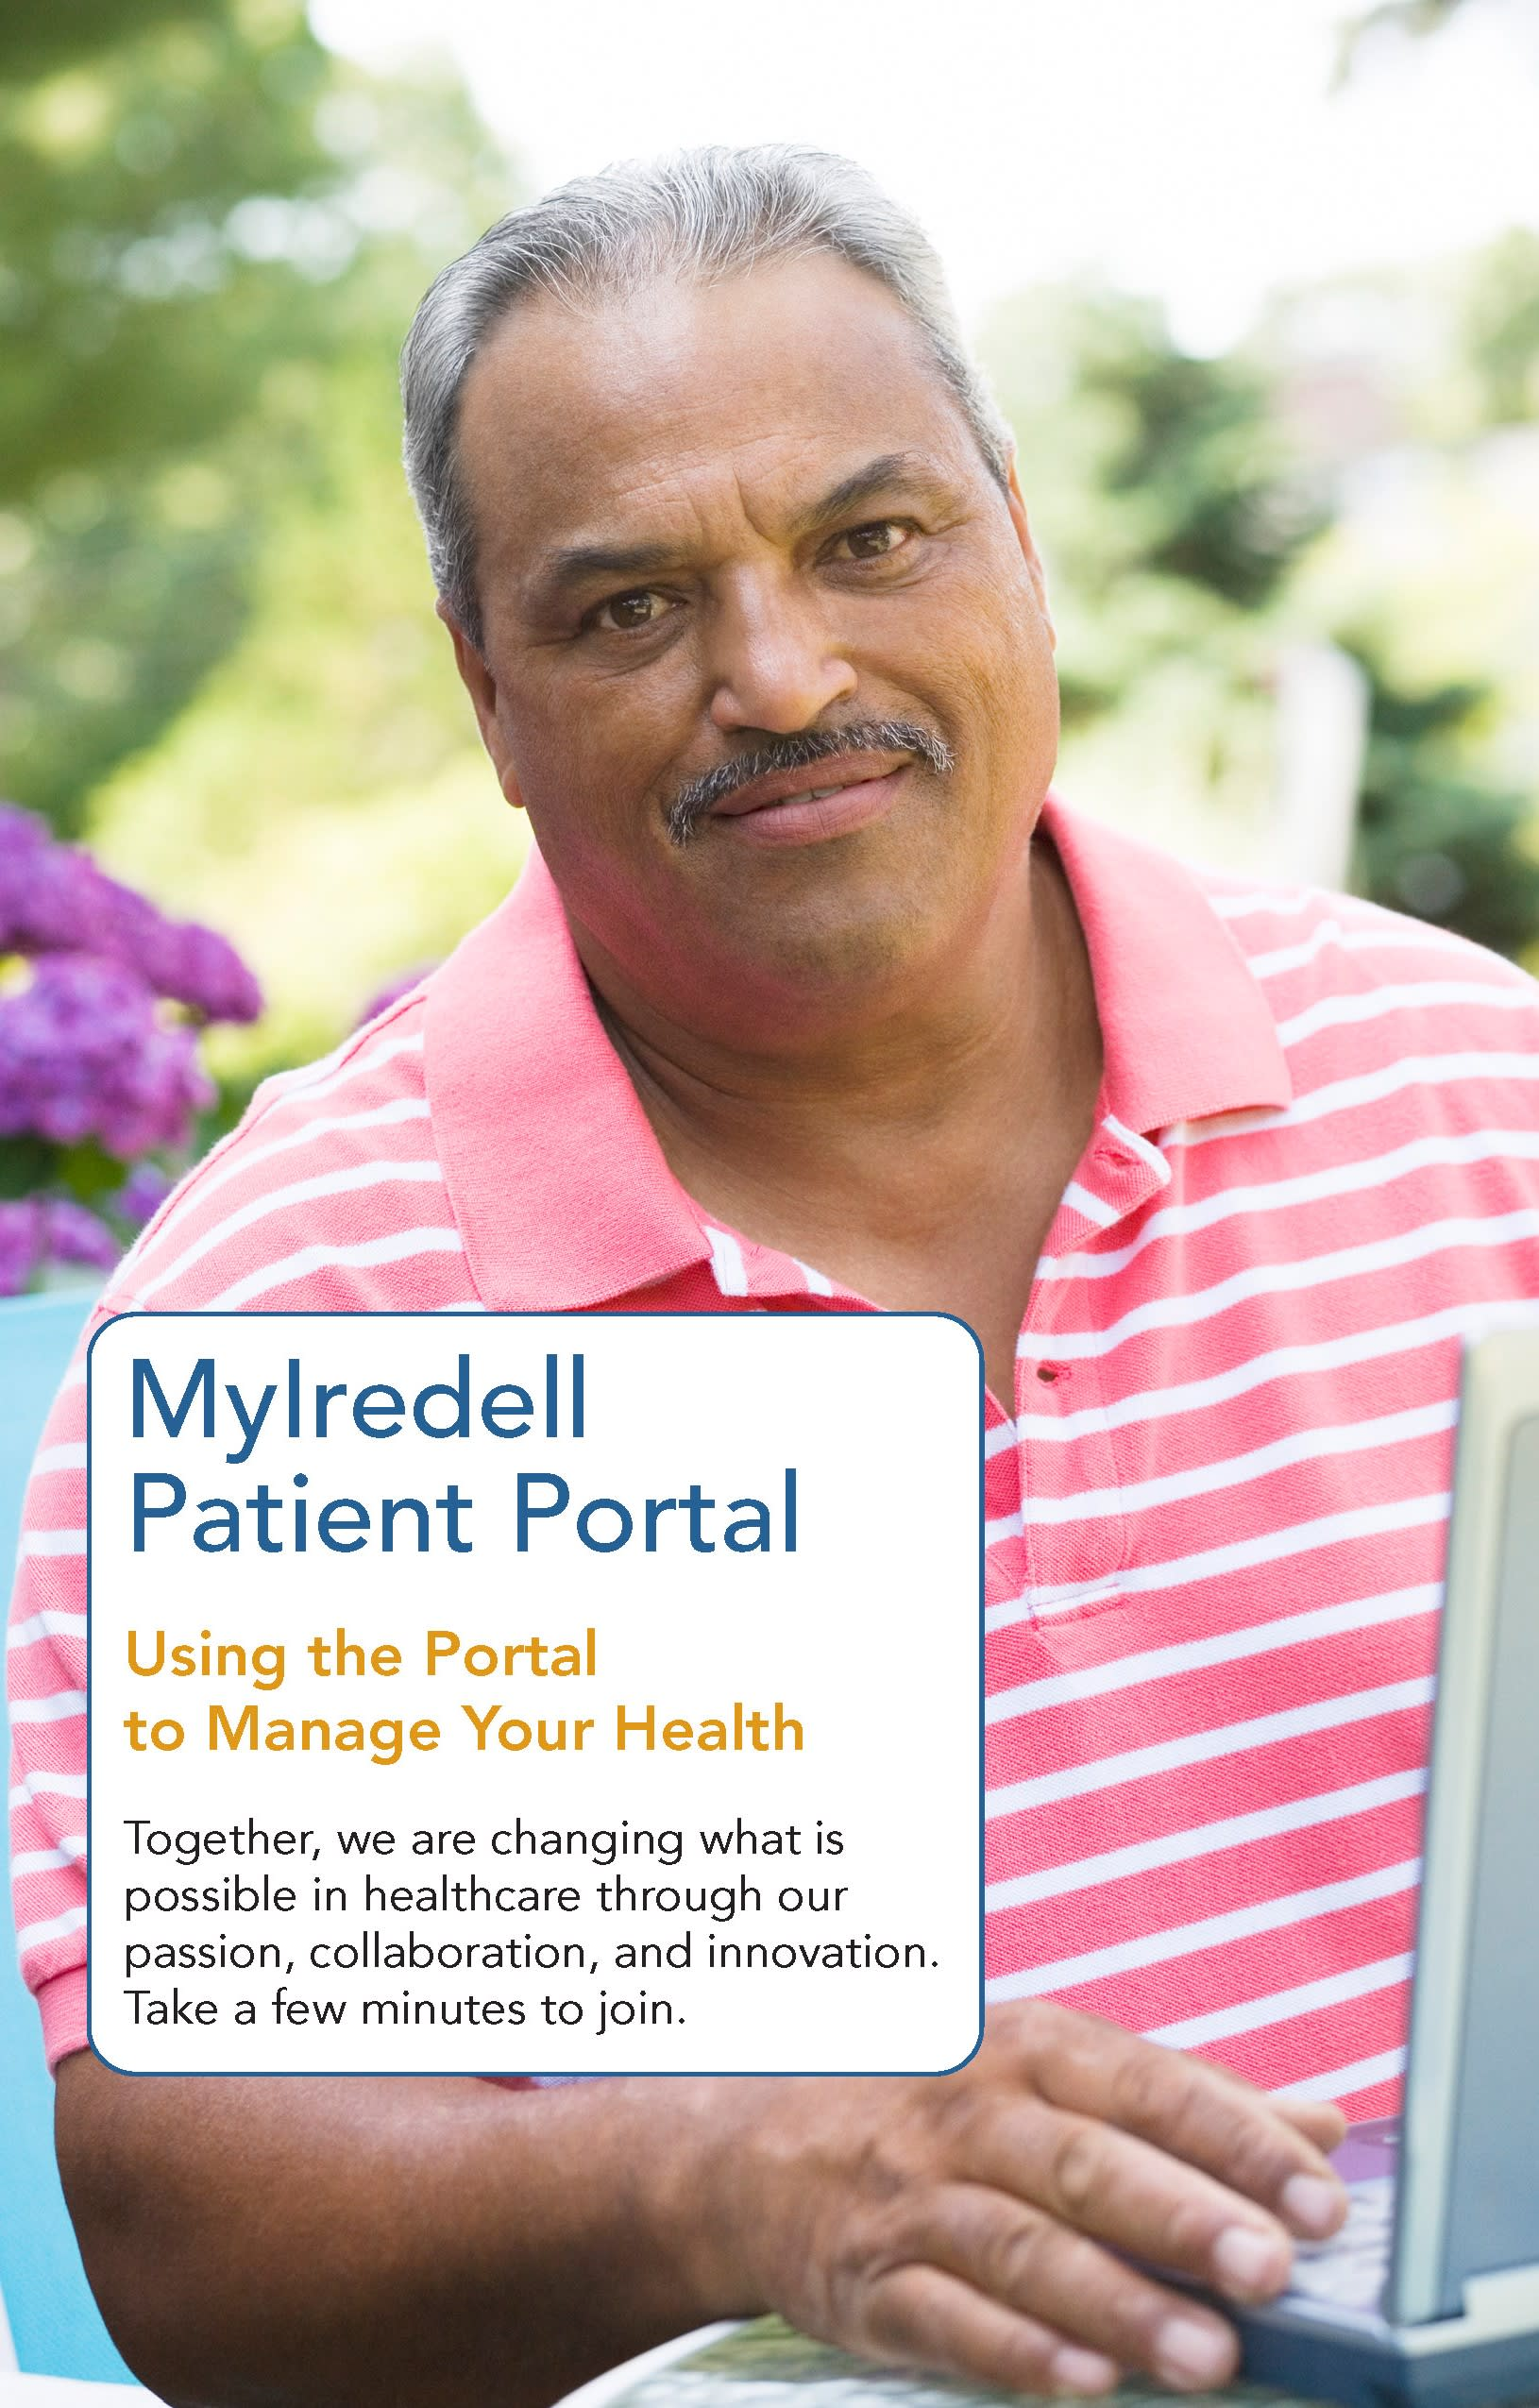 2020 Myiredell Cerner Photo